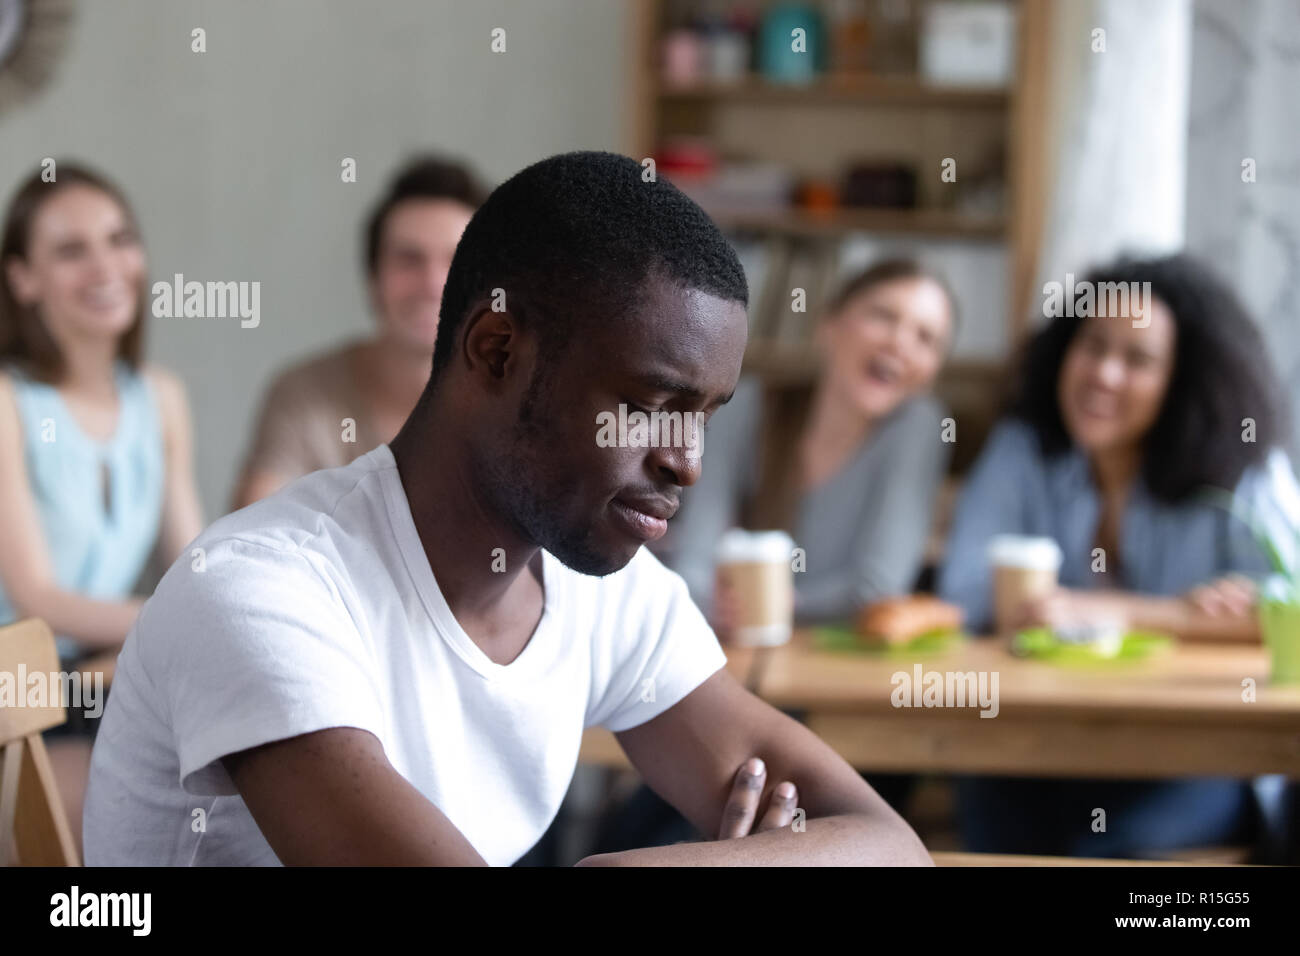 Group diverse people sitting in cafe laughing scoffing at black guy. Focus on sitting separately man feels upset and unhappy, schoolmates not take him - Stock Image